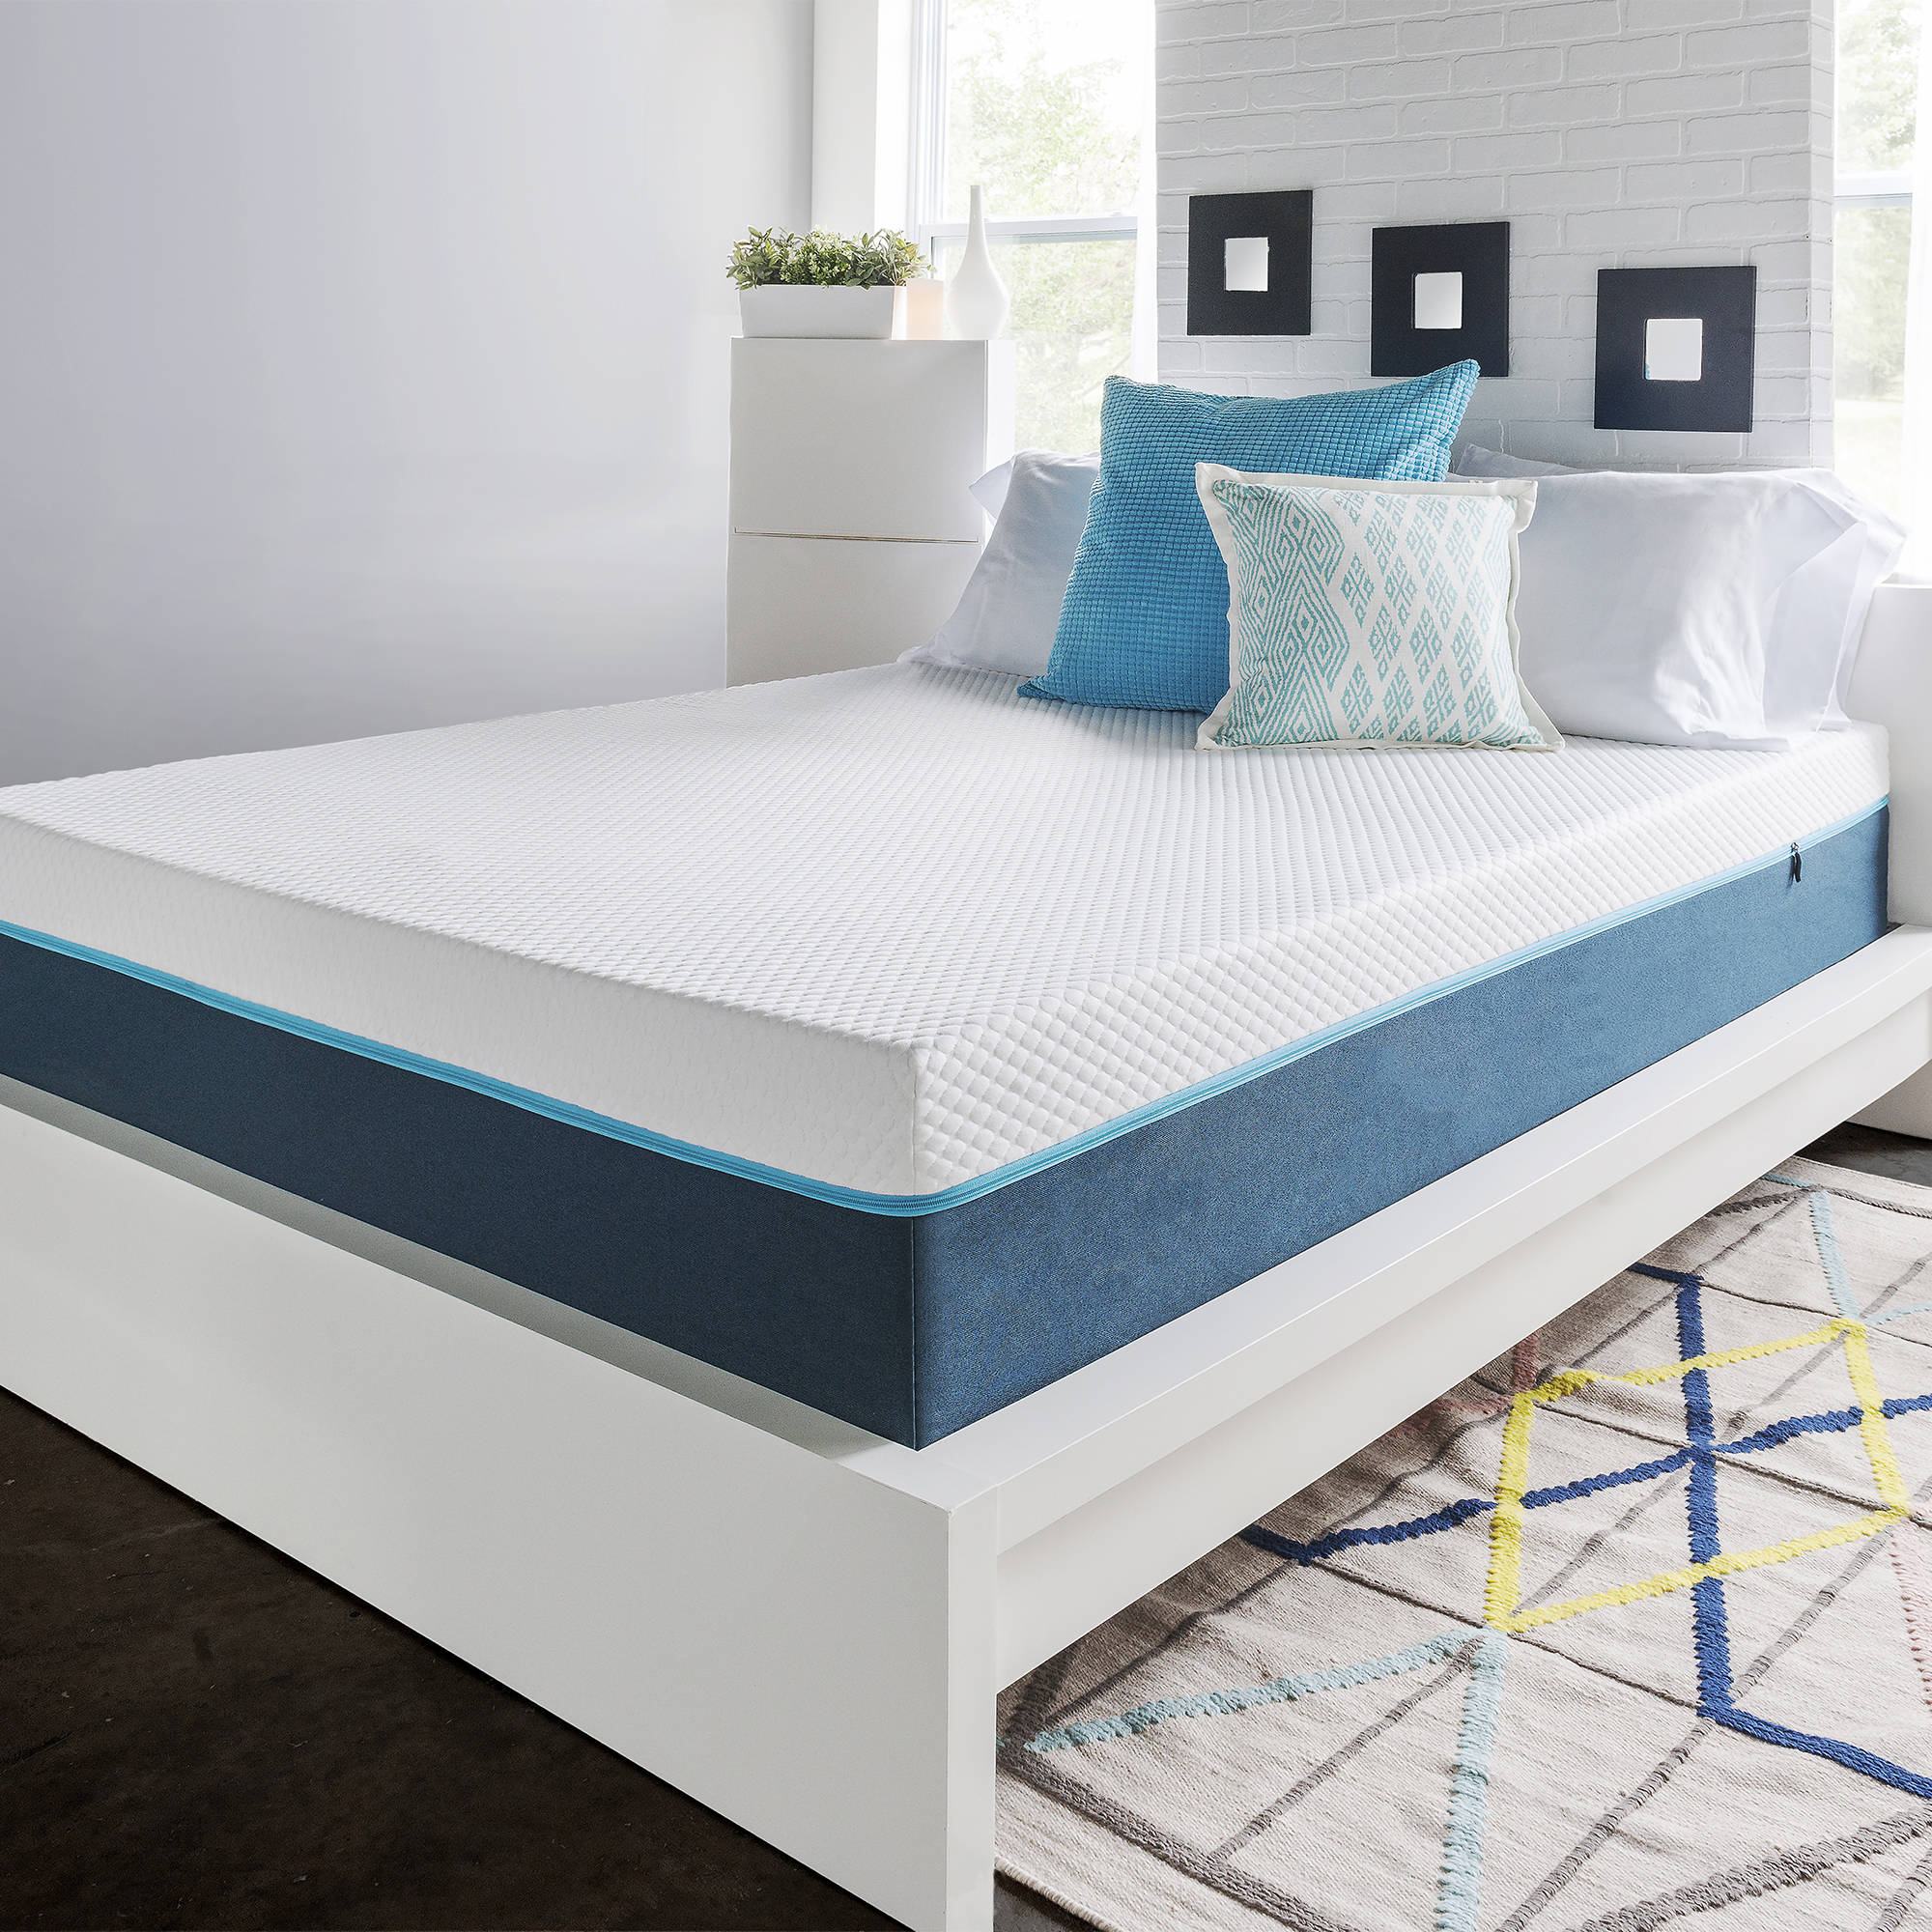 "HoMedics 12"" Air Gel Supreme Memory Foam Mattress, Multiple Sizes"